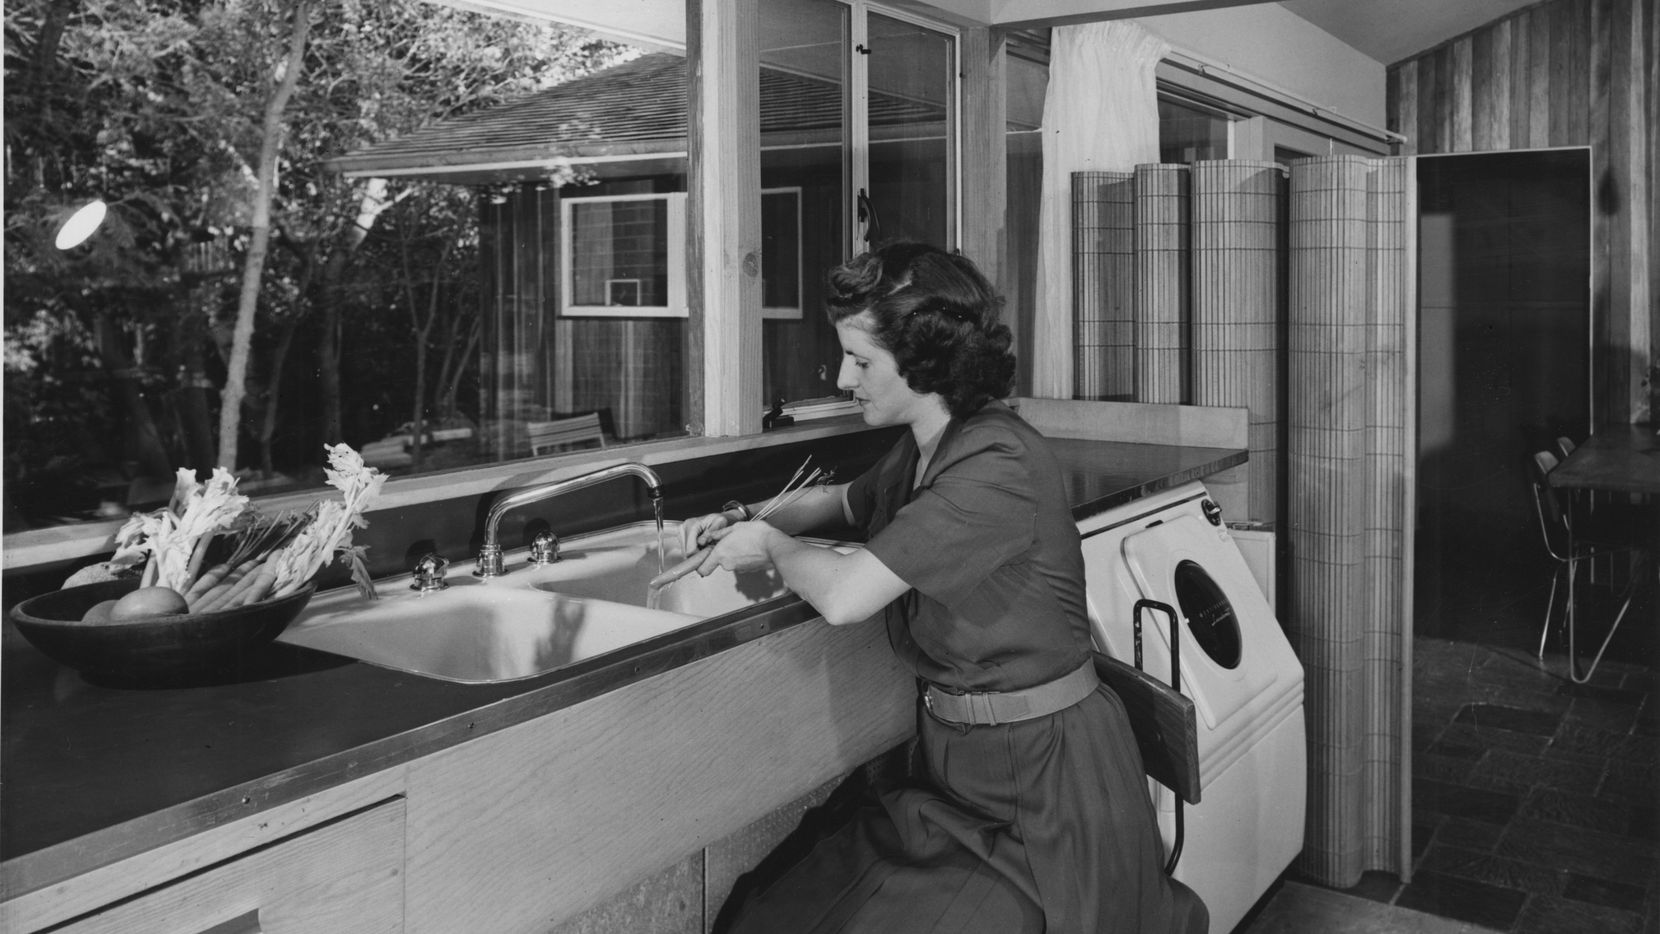 Dallas modernist architect Harold Prinz built this home on Maple Springs Boulevard as his family residence in 1949. His wife, Jeanette Prinz, is shown working in the kitchen.